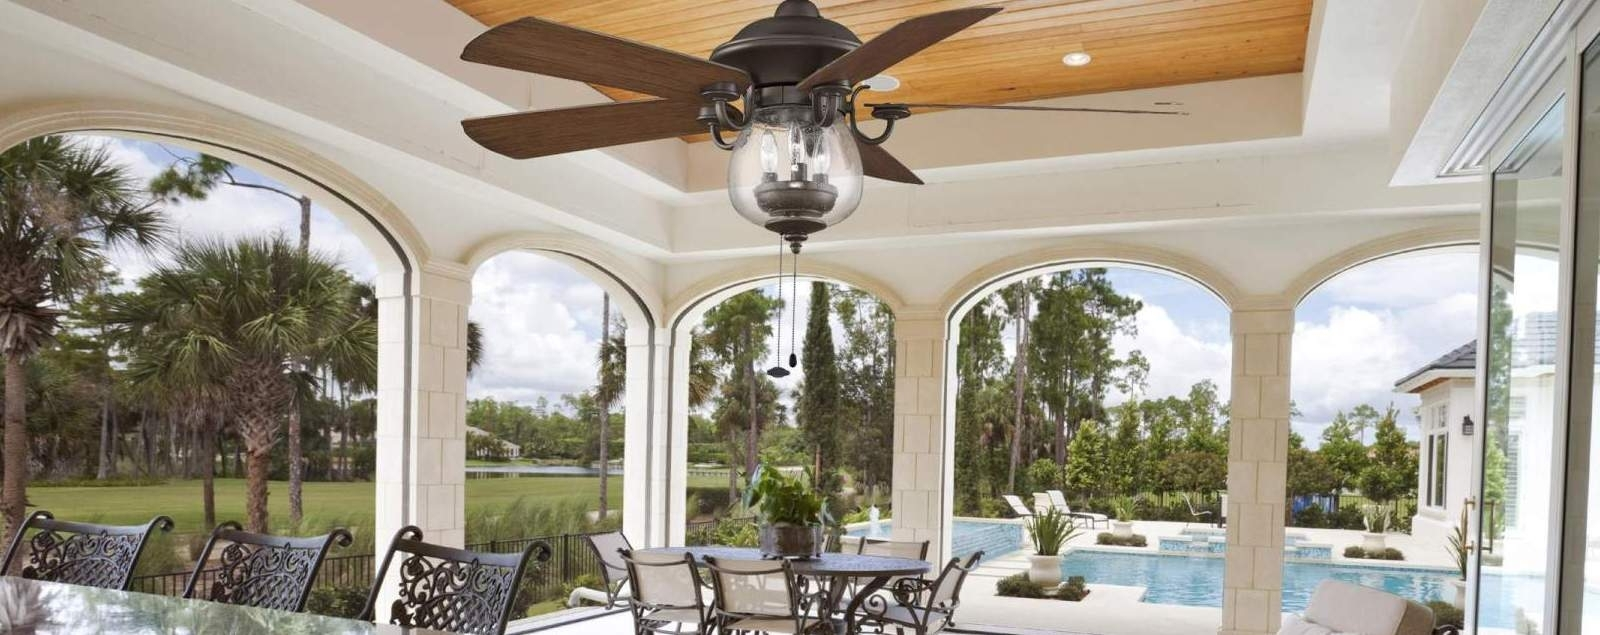 Outdoor Ceiling Fans For Windy Areas In Current Outdoor Ceiling Fans – Shop Wet, Dry, And Damp Rated Outdoor Fans (View 13 of 20)